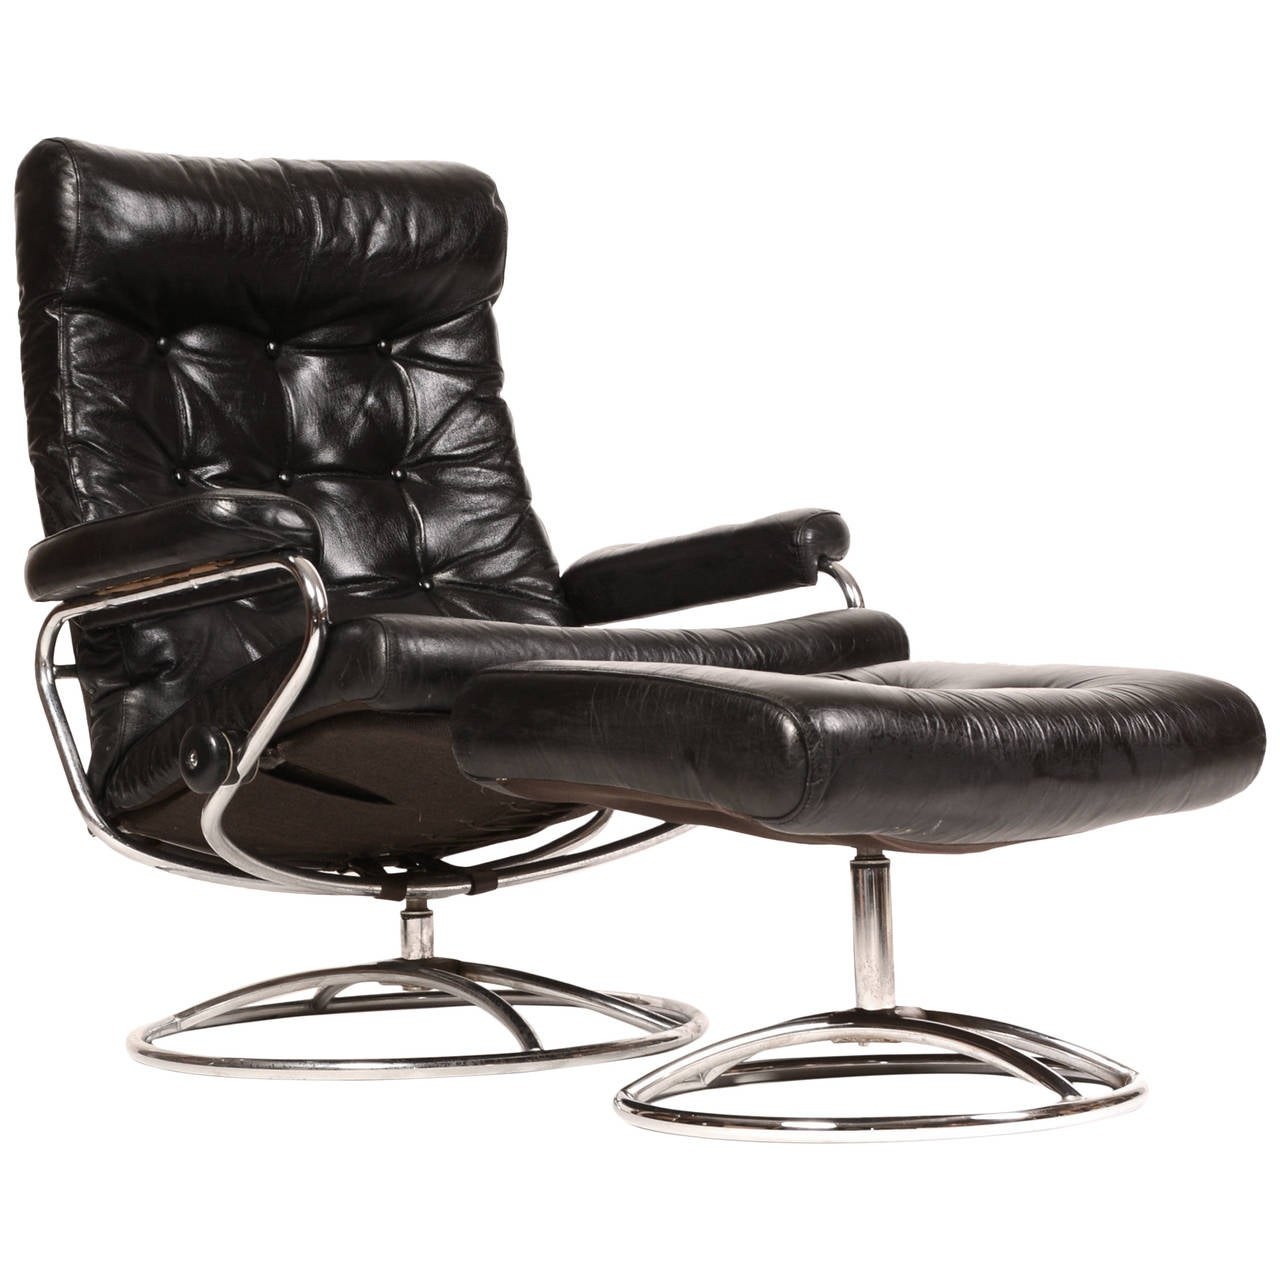 Ekornes Stressless Reclining Stressless Lounge Chair And Ottoman By Ekornes